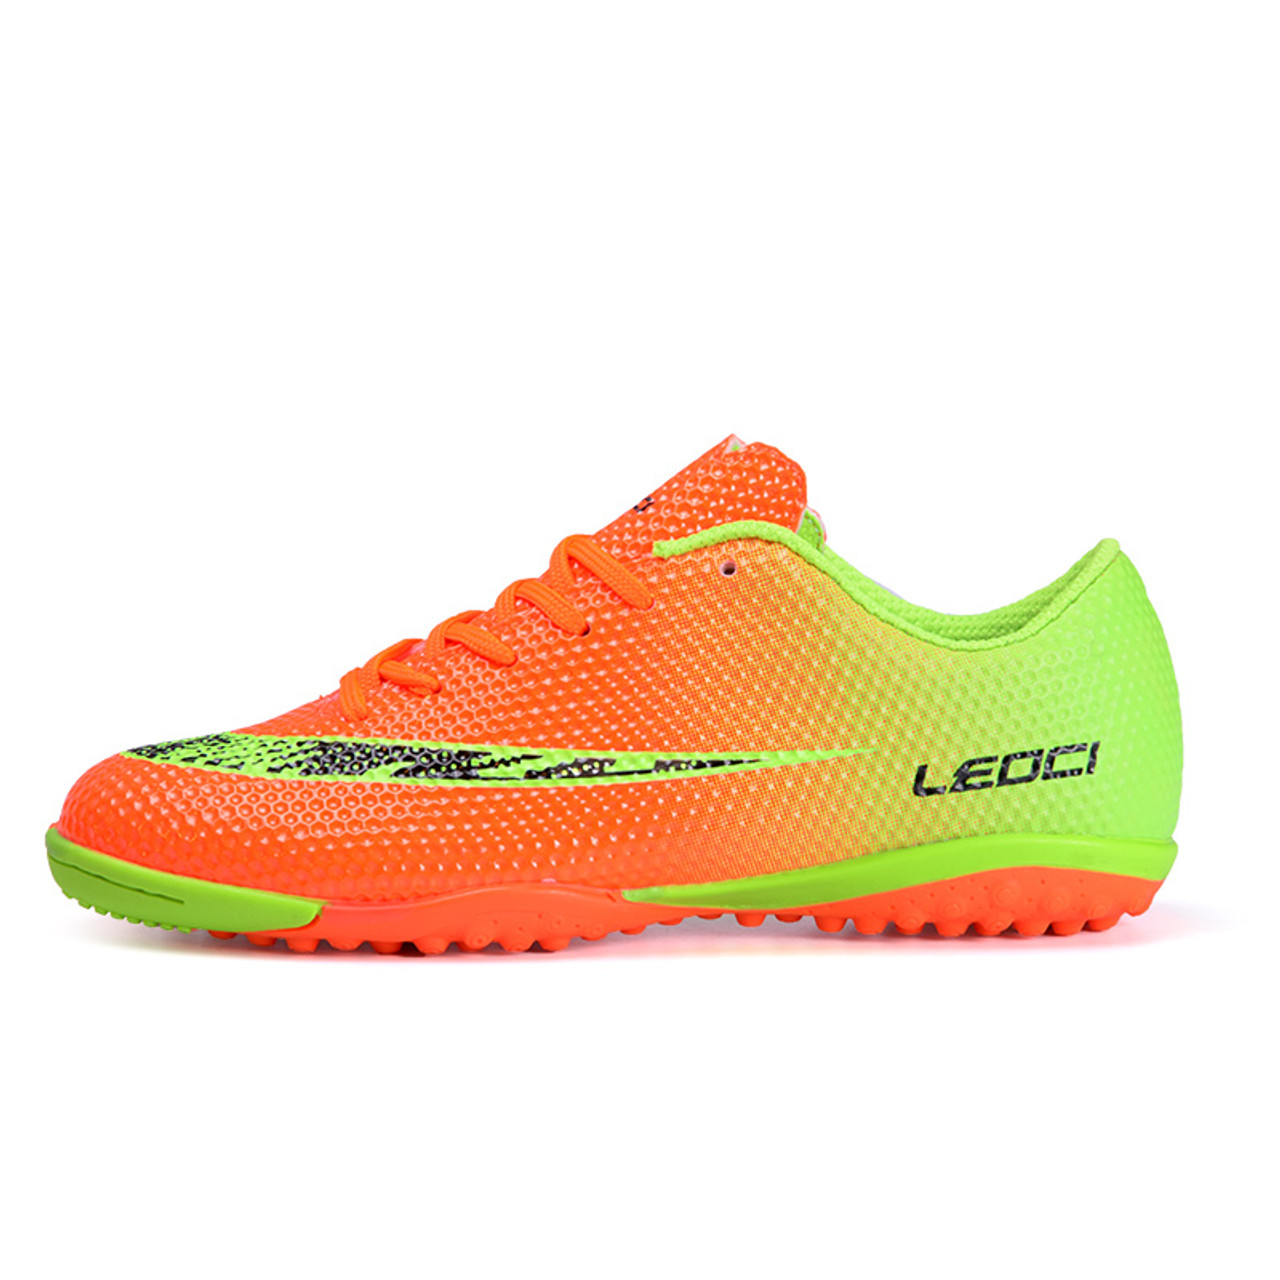 86e13c536 Men Broken Nails Football Shoes Long Spikes Soccer Cleats For Adult &  Children Newest Training ...